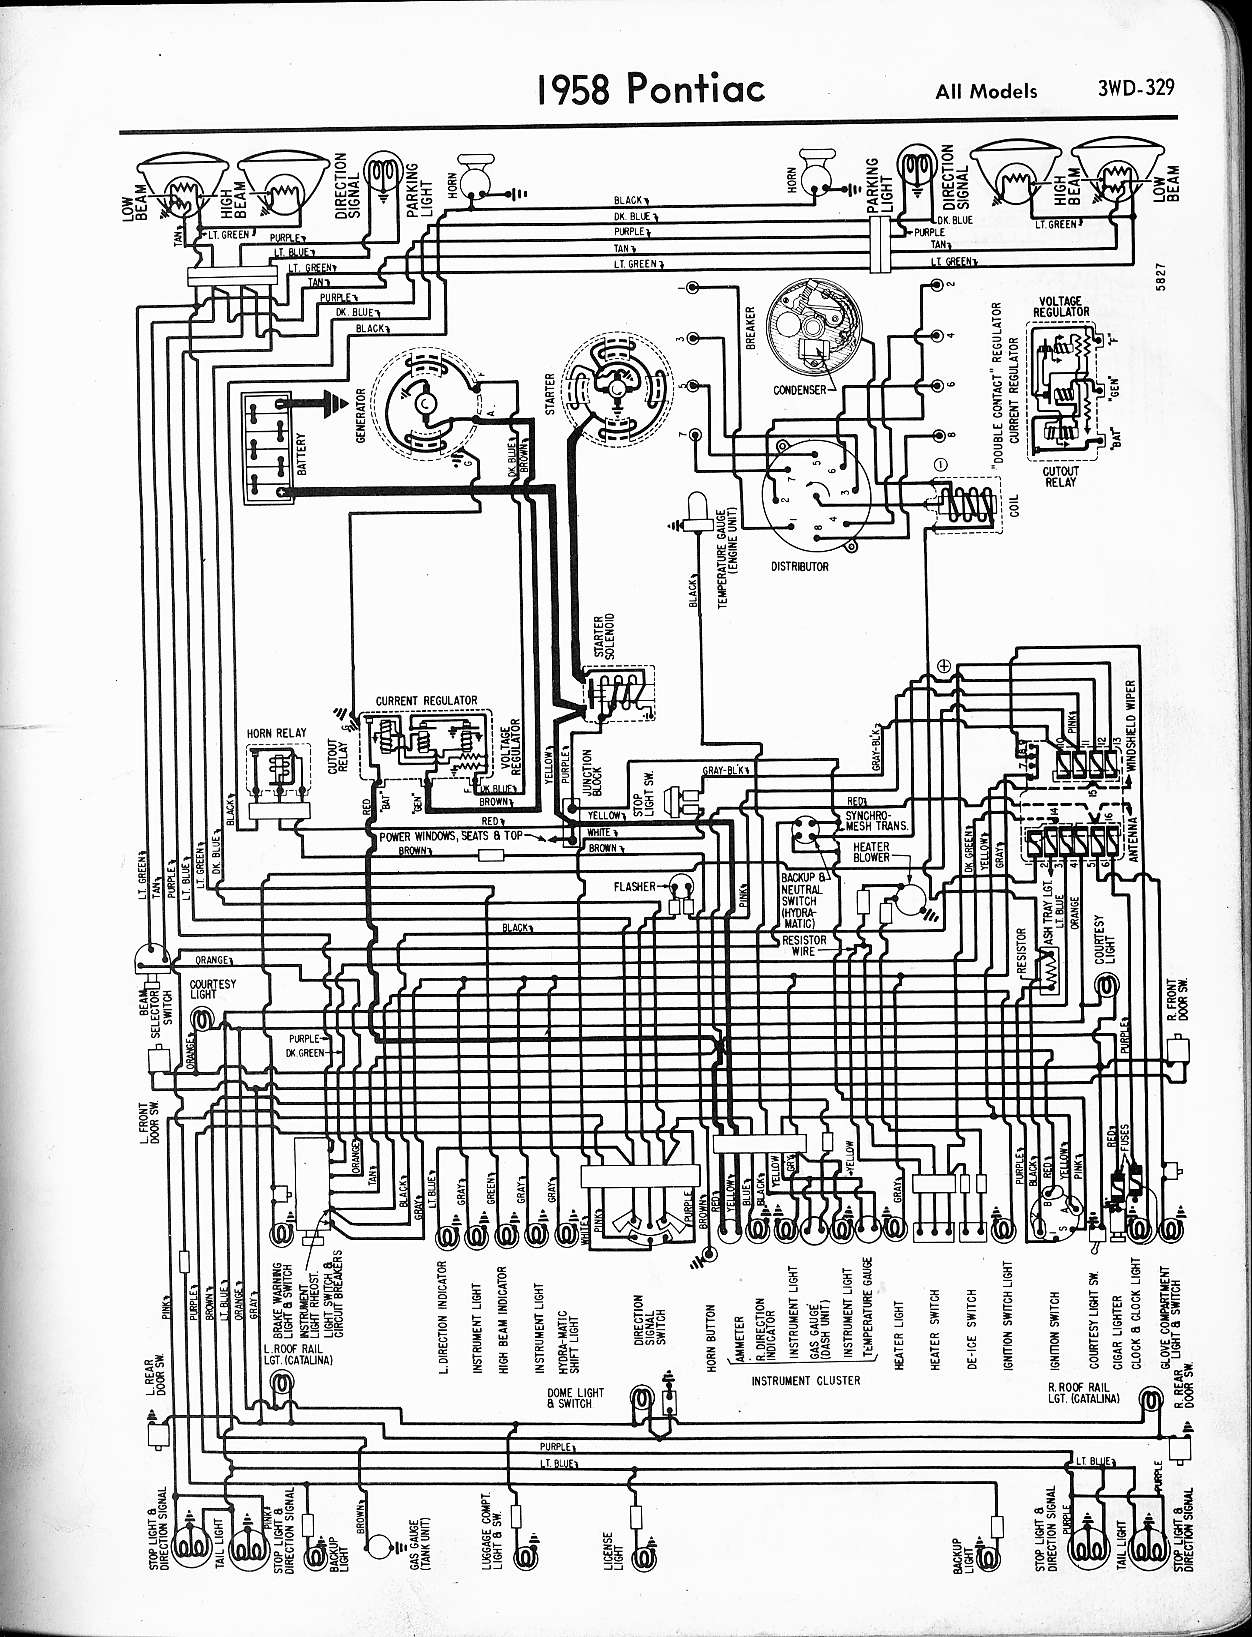 Superb 1964 Pontiac Tempest Wiring Diagram On 1964 Gmc Wiring Diagram Wiring Cloud Nuvitbieswglorg